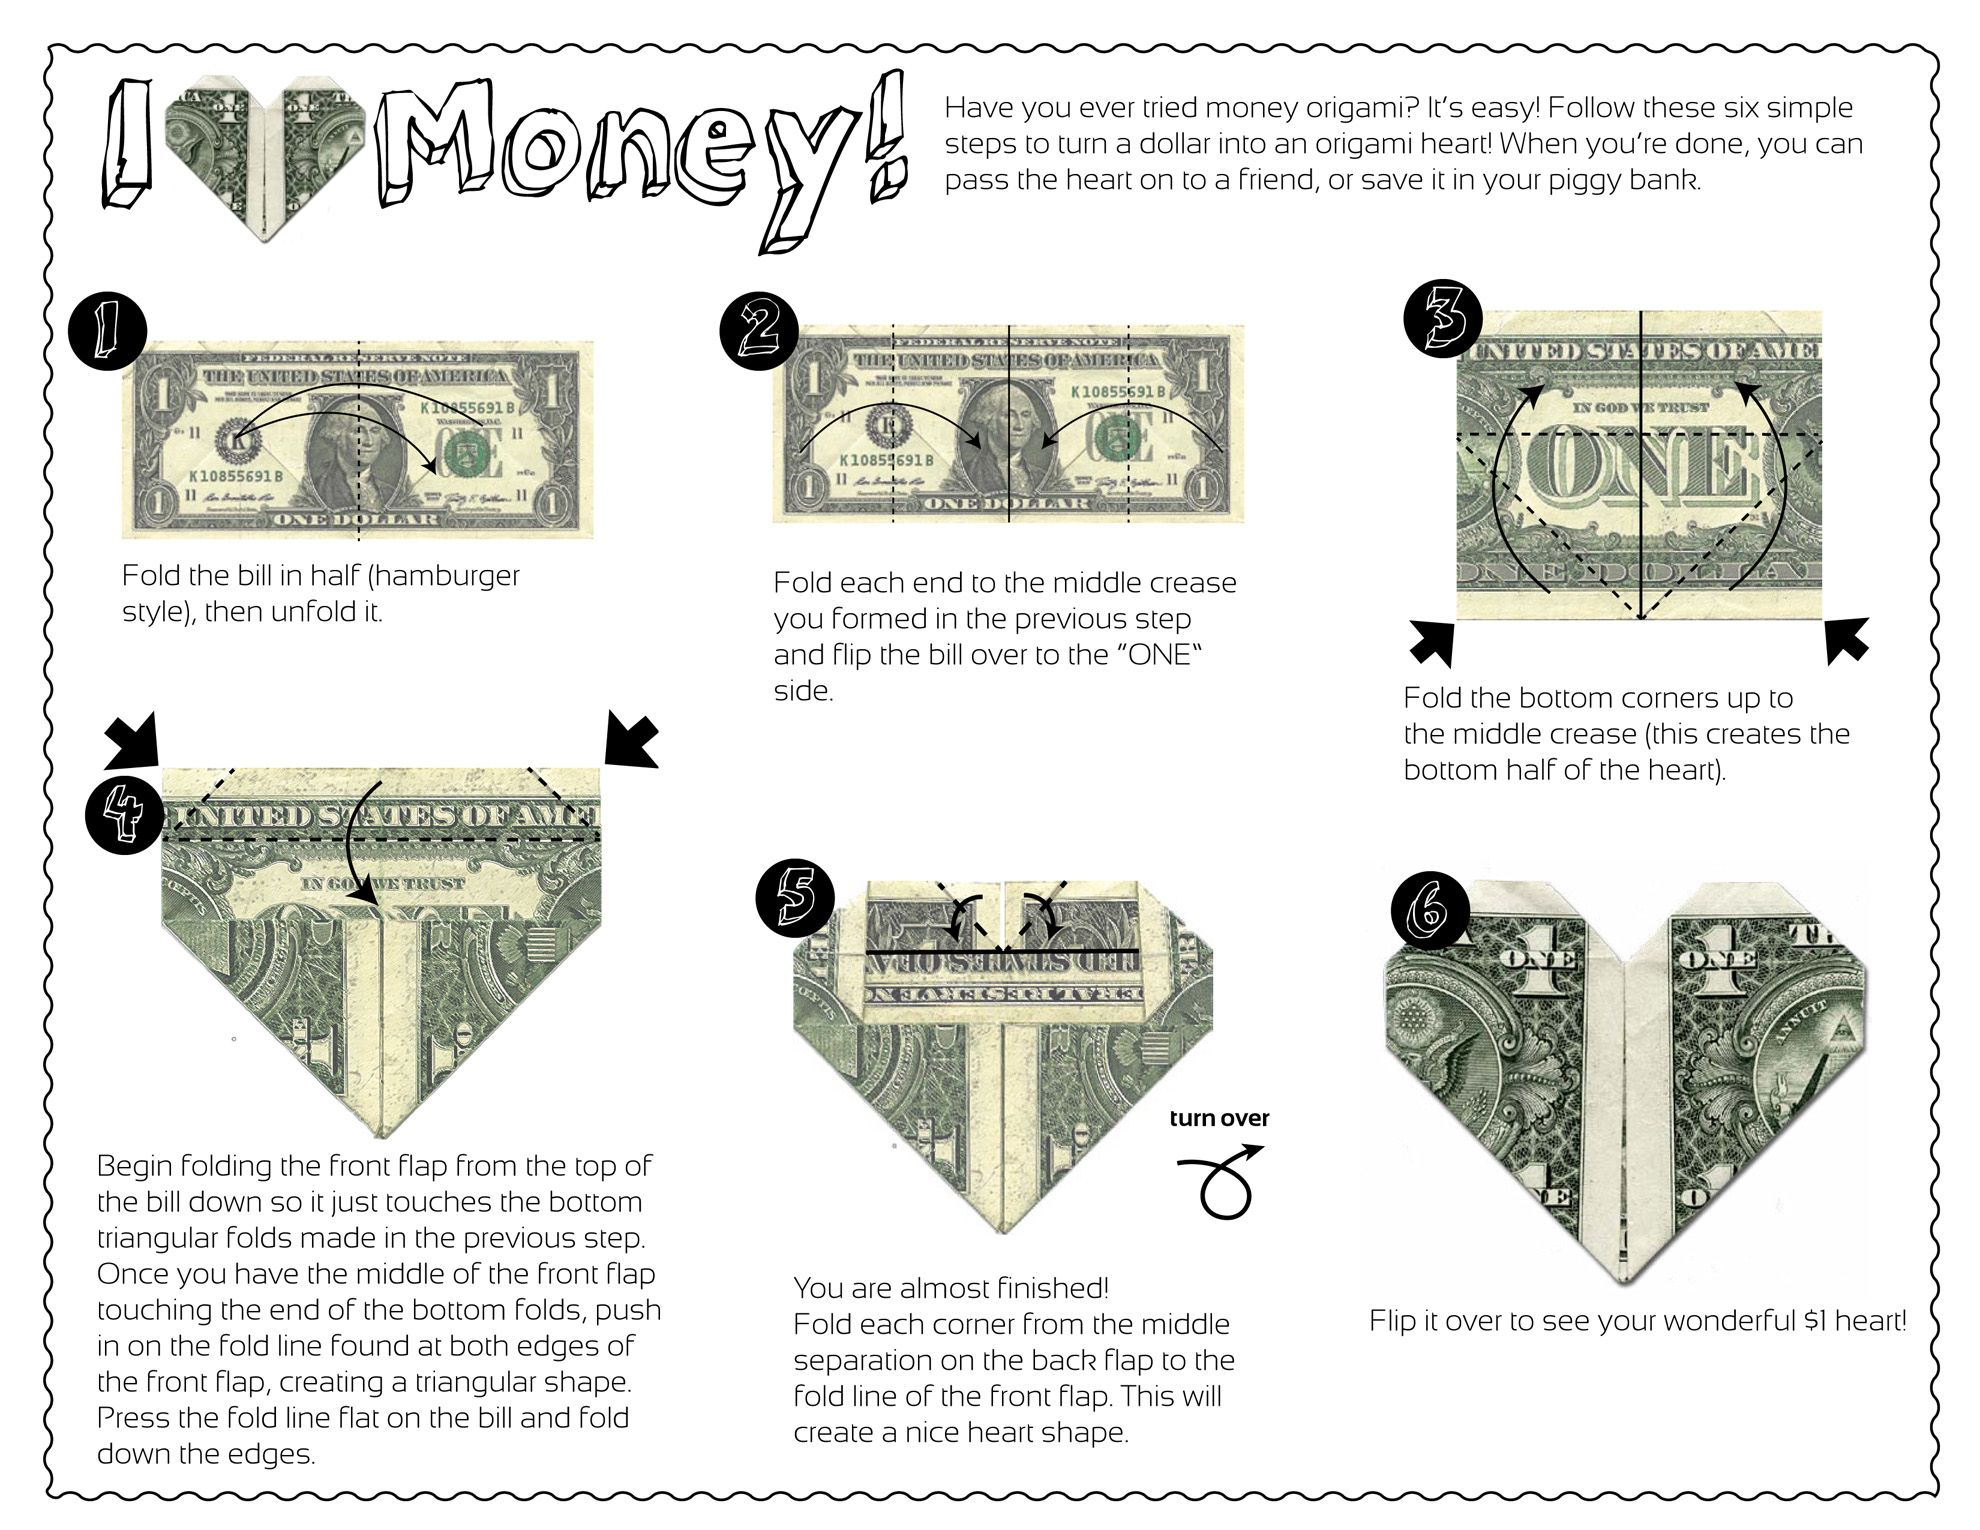 Follow these six simple steps to turn a dollar into an ... - photo#37